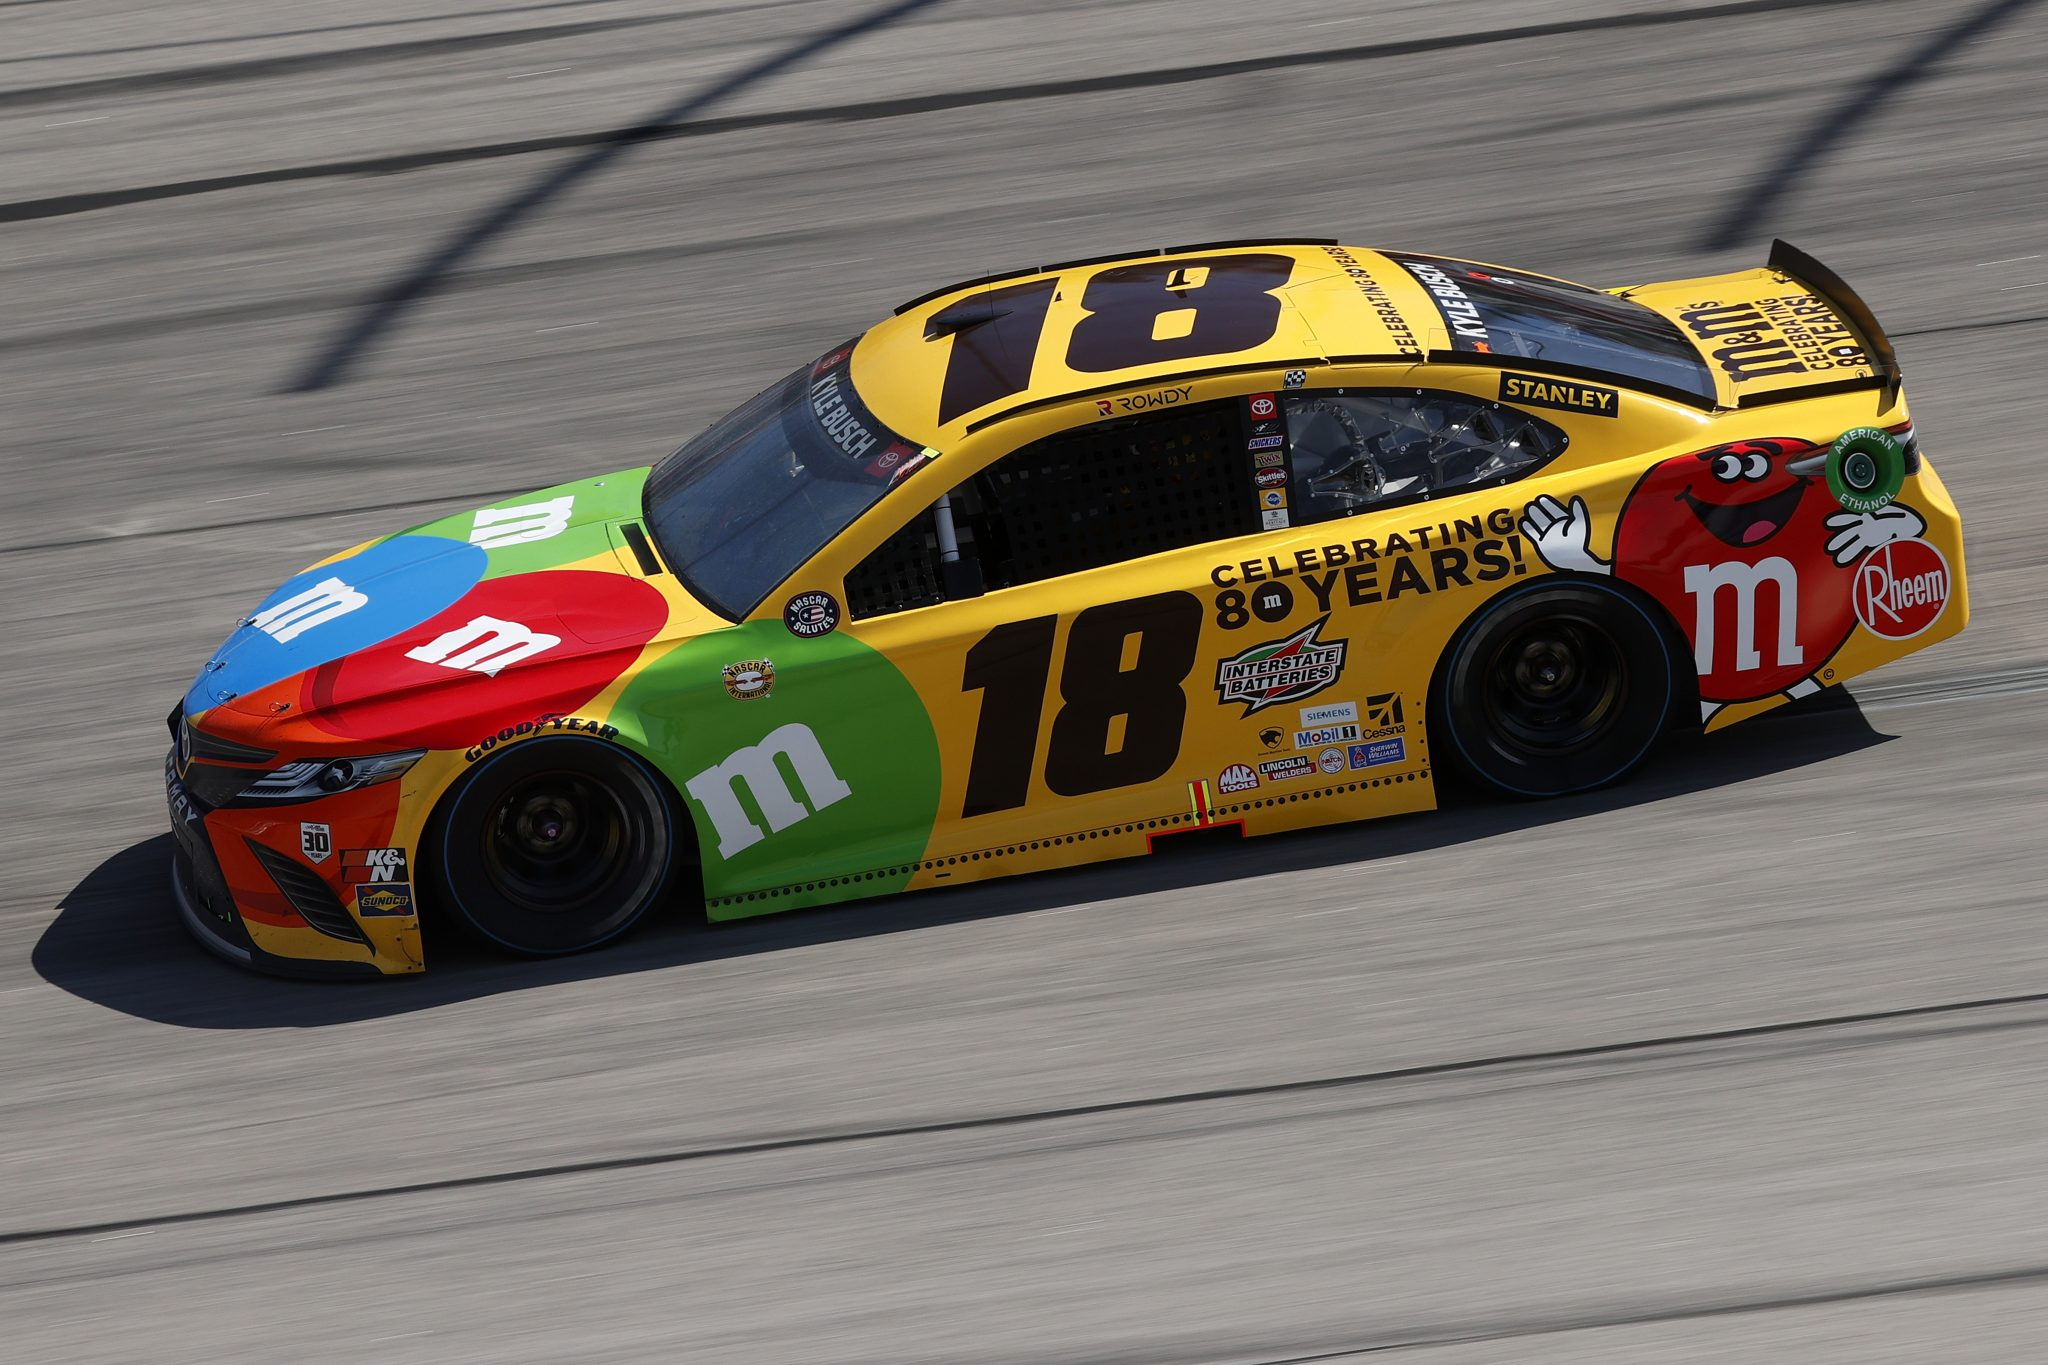 DARLINGTON, SOUTH CAROLINA - MAY 09: Kyle Busch, driver of the #18 M&M's Toyota, drives during the NASCAR Cup Series Goodyear 400 at Darlington Raceway on May 09, 2021 in Darlington, South Carolina. (Photo by Chris Graythen/Getty Images) | Getty Images